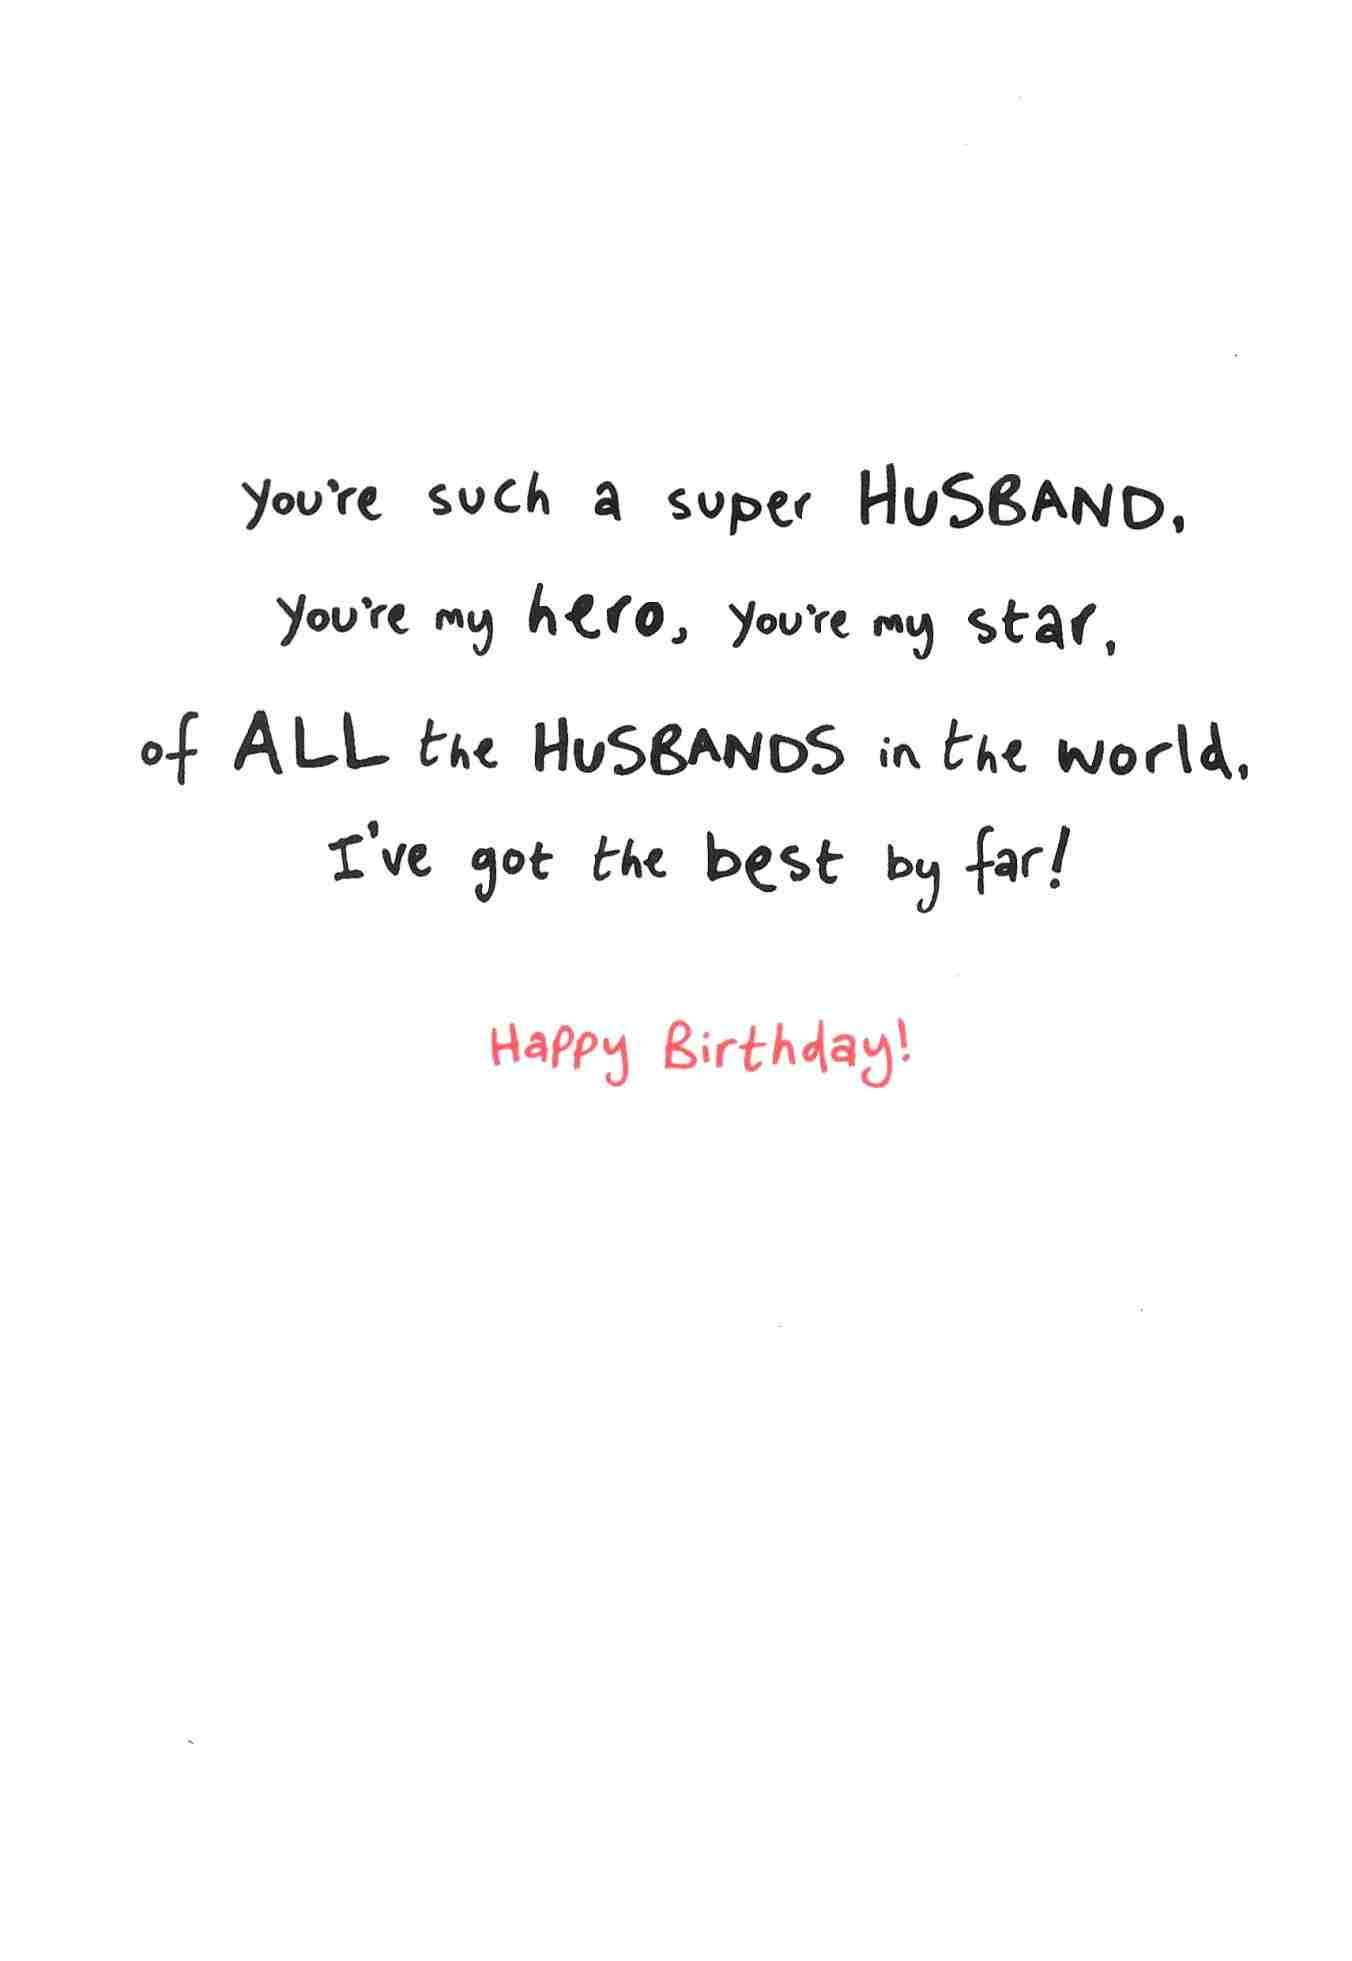 Happy Birthday Greetings Cards For Husband Download Full View Animated Free Wallpaper